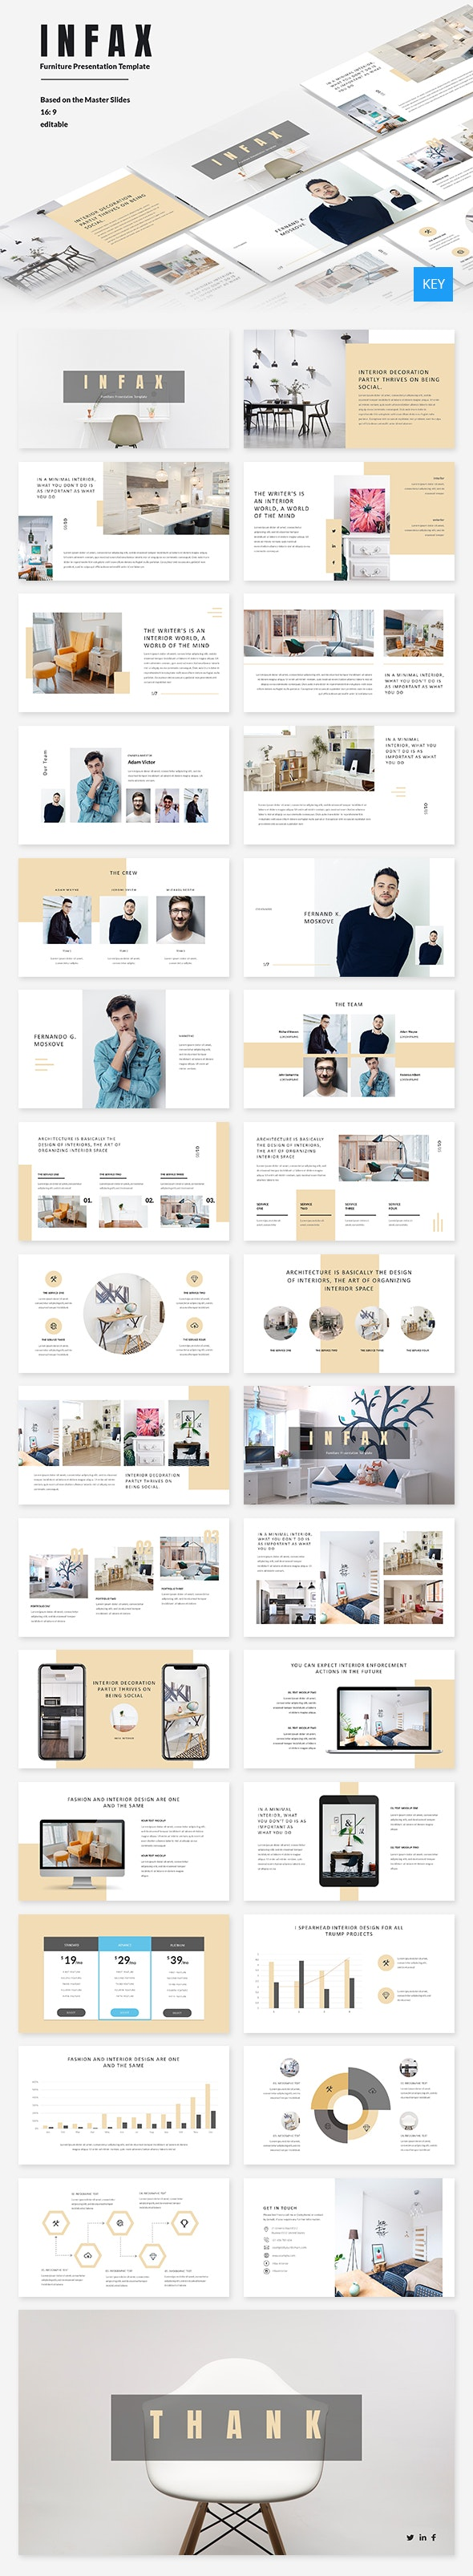 Infax - Furniture Keynote Template - Keynote Templates Presentation Templates